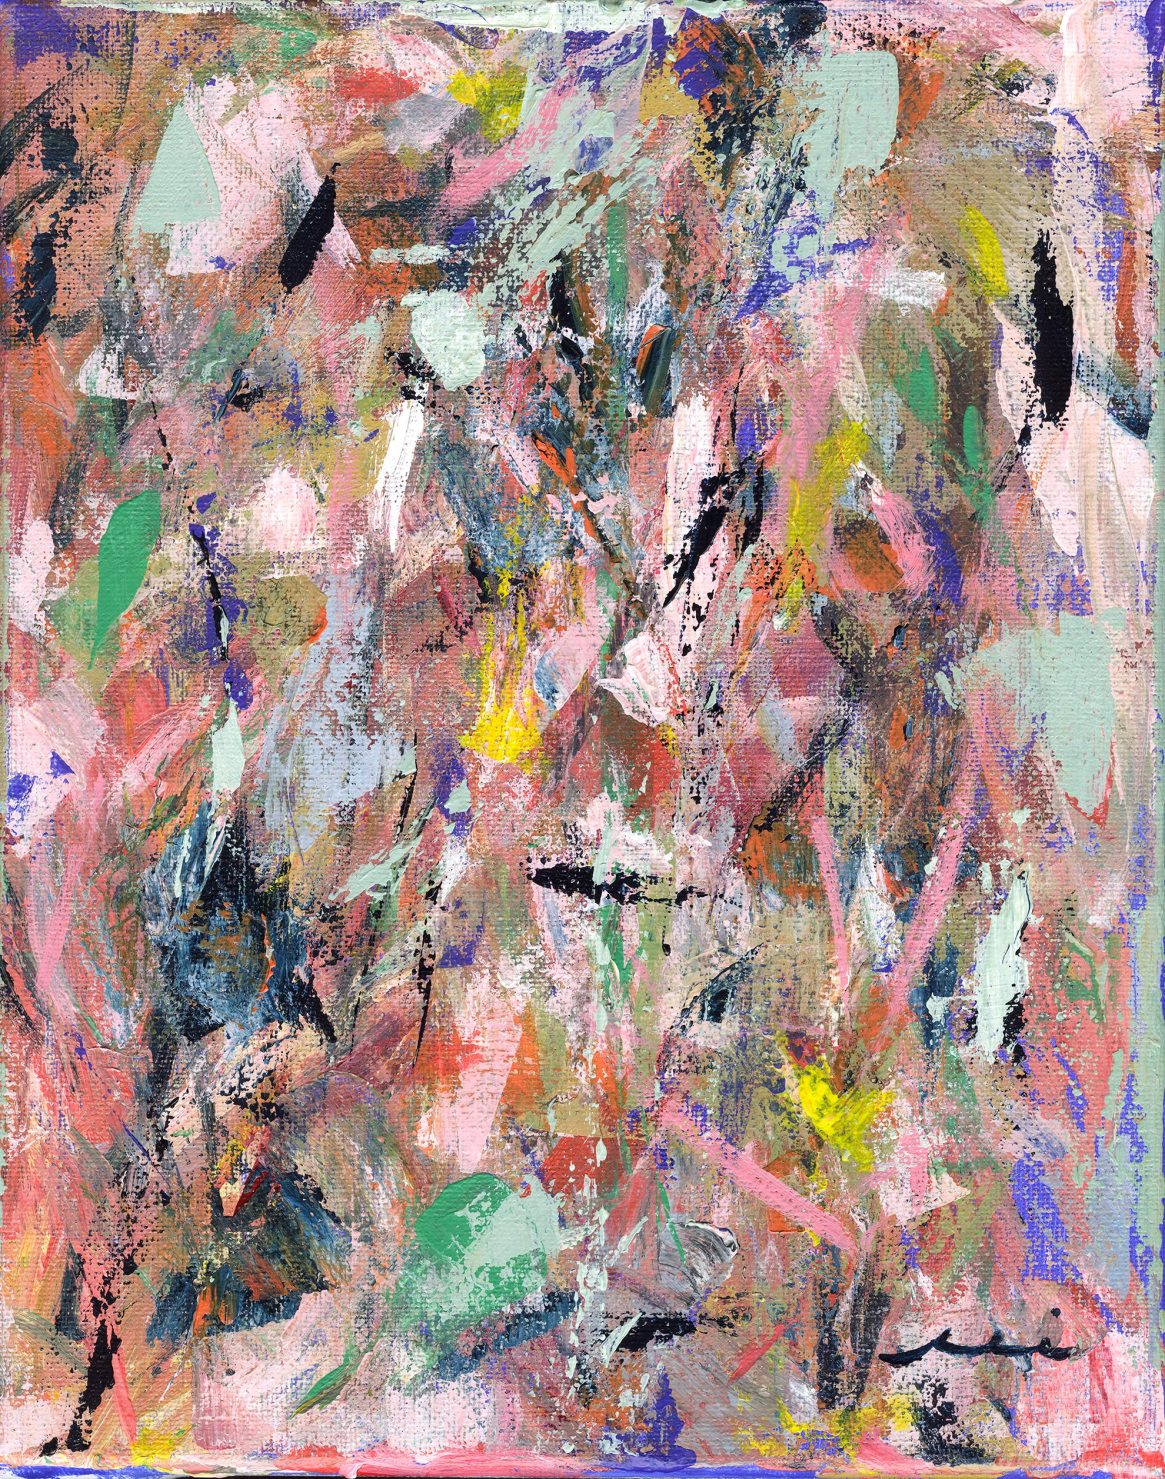 colorful abstract brushstrokes painting